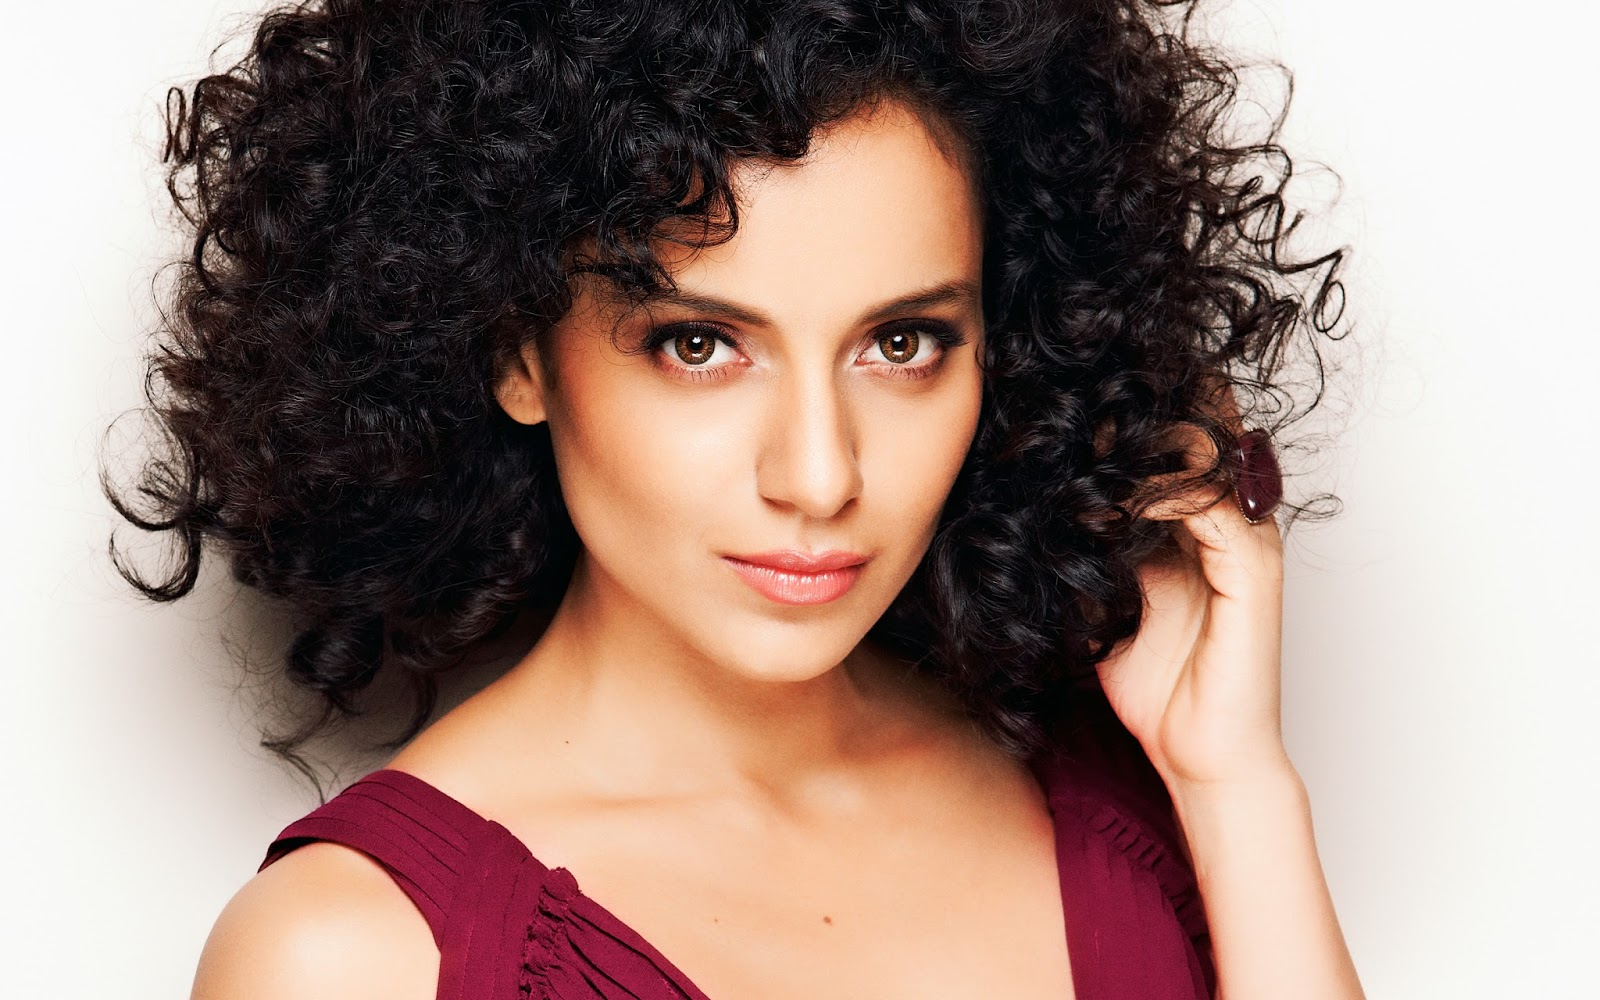 Kangana Ranaut Made a Decision to WALKS OUT of Anurag Basu's Imali go citing date issues